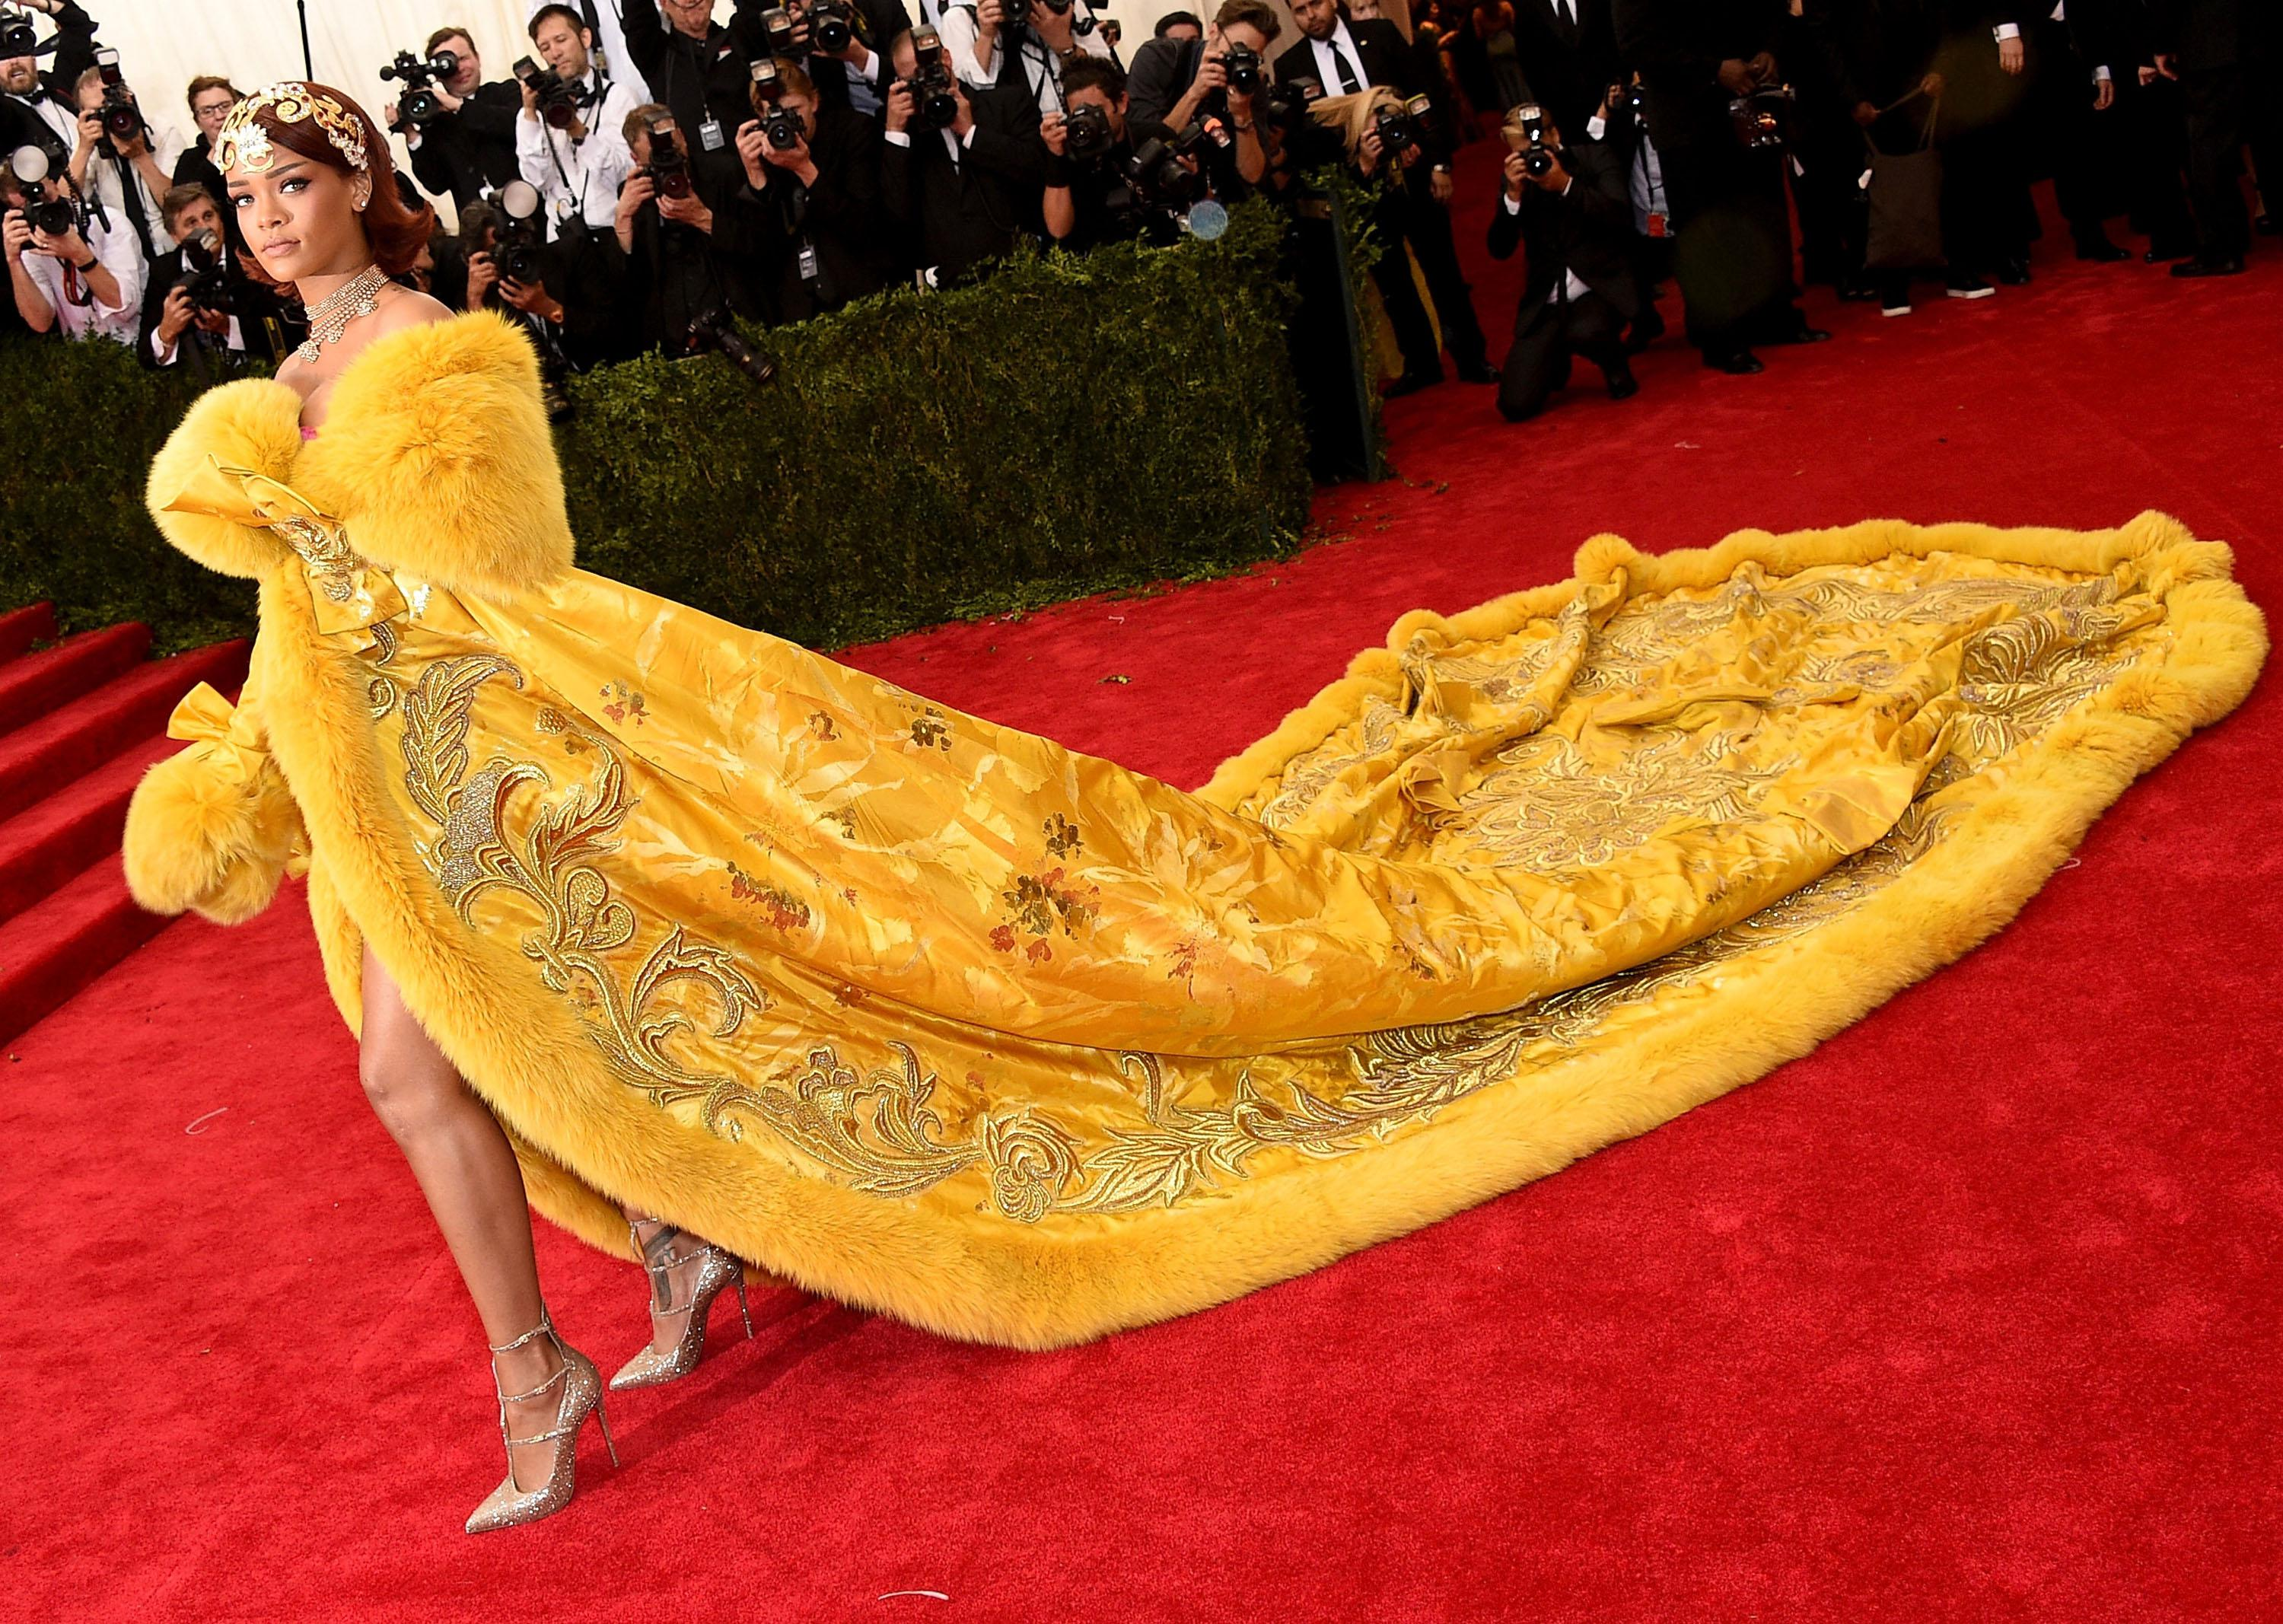 Rihanna wears a yellow dress with an enormous train.